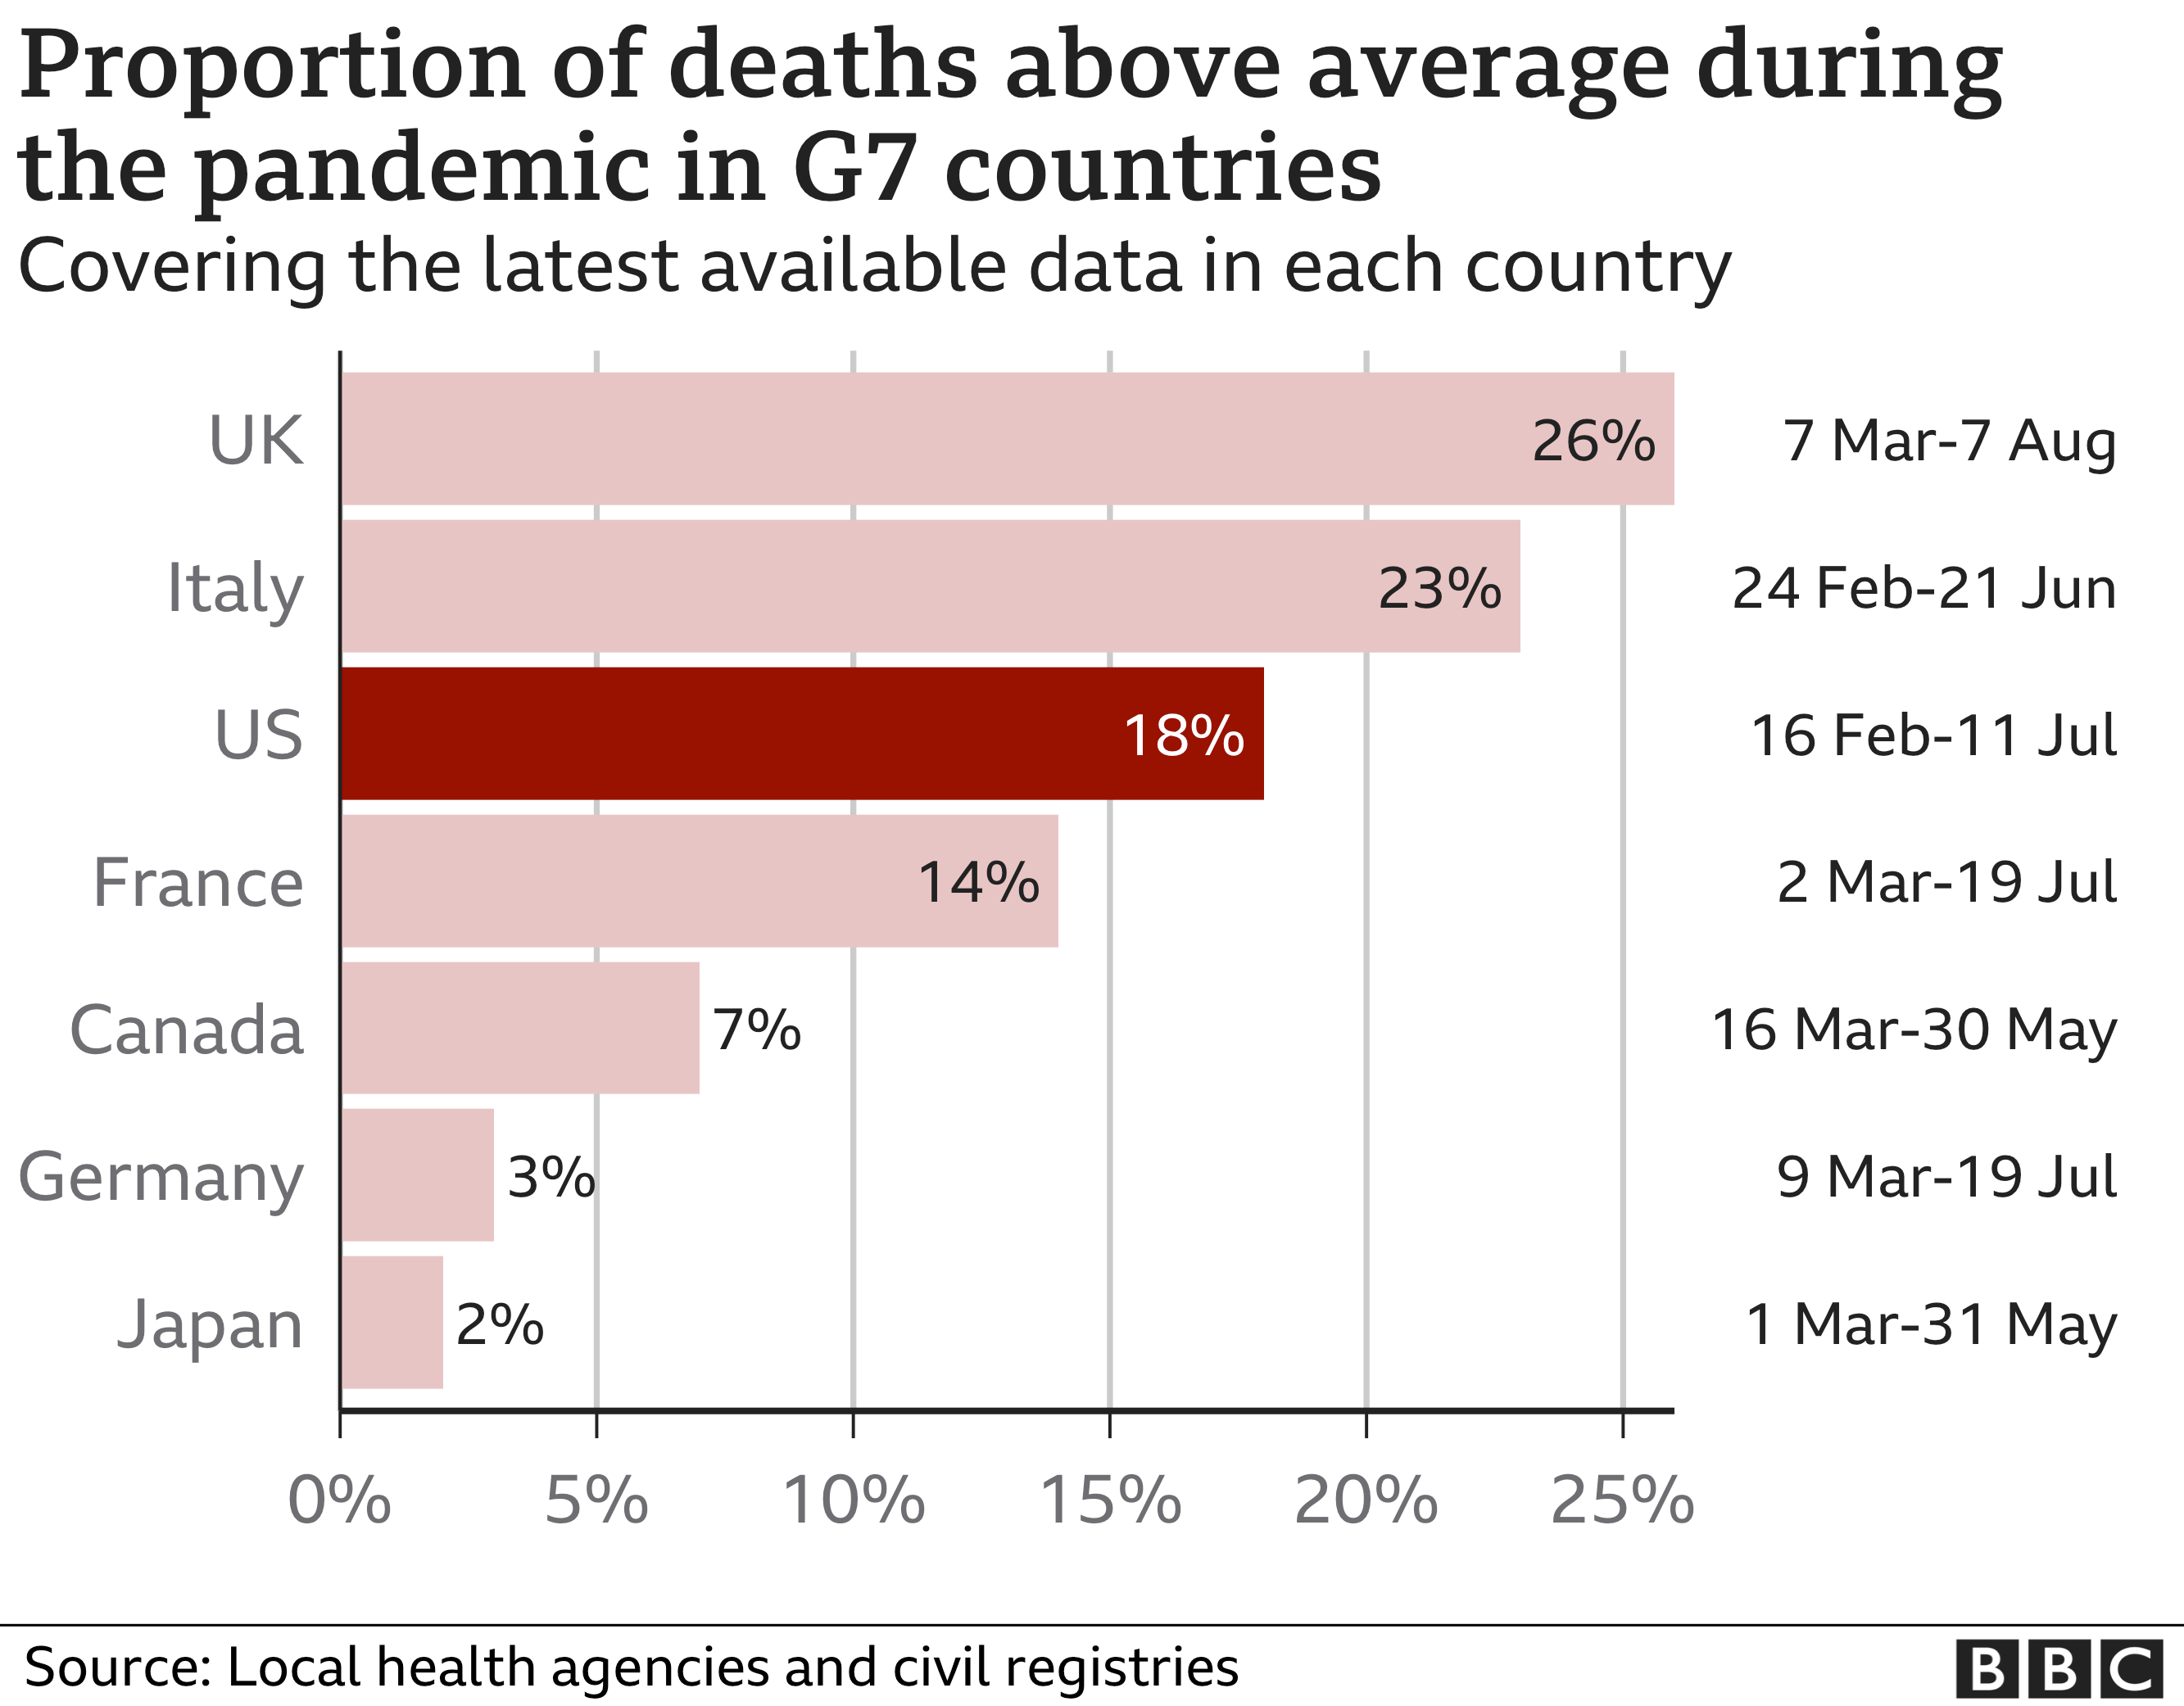 Bar chart comparing excess death rates in various countries